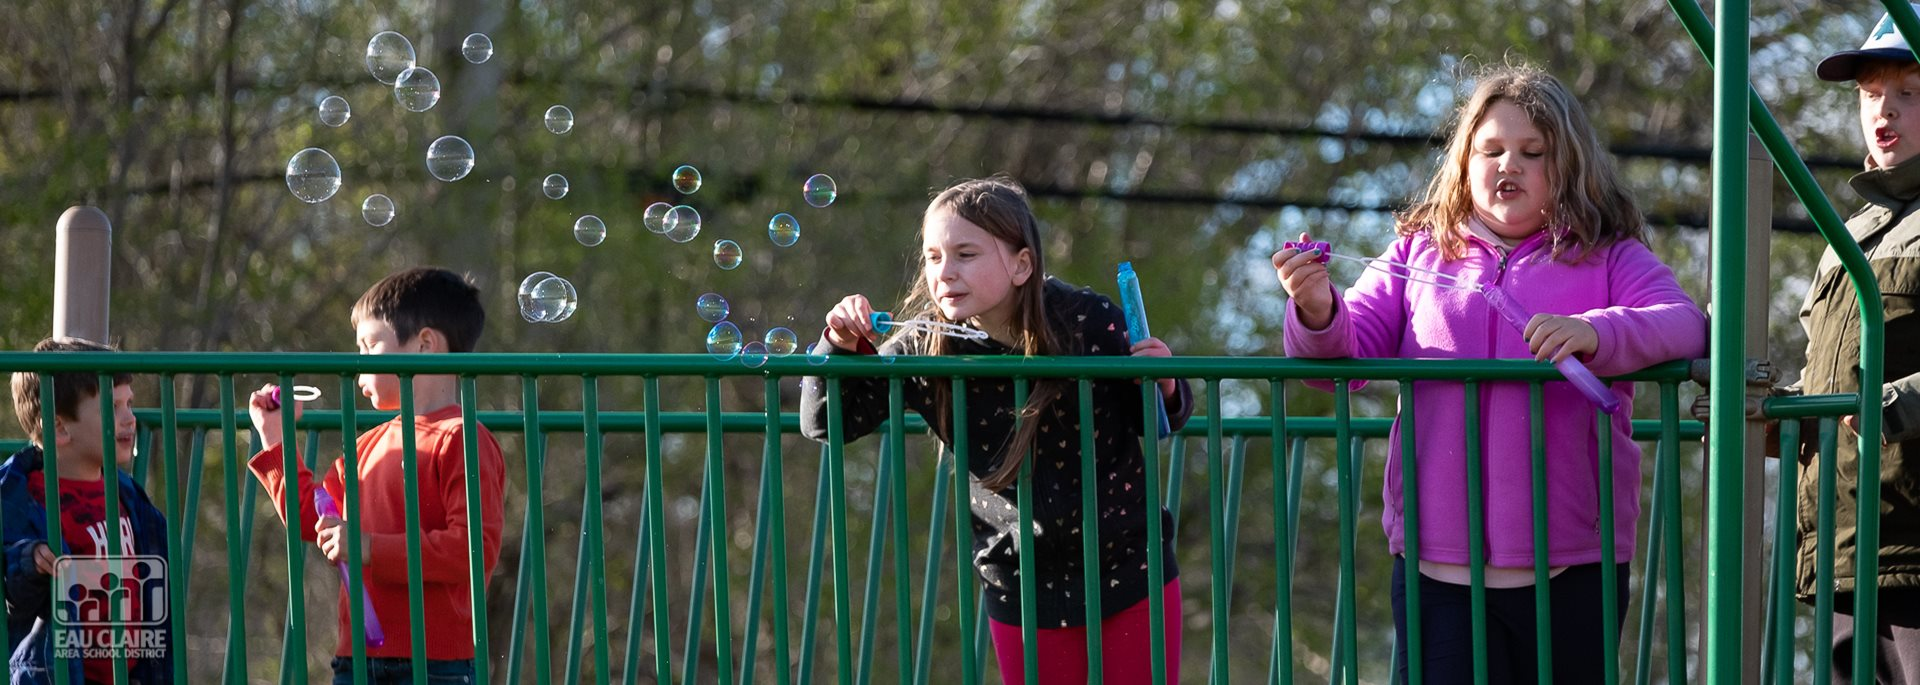 students blowing bubbles